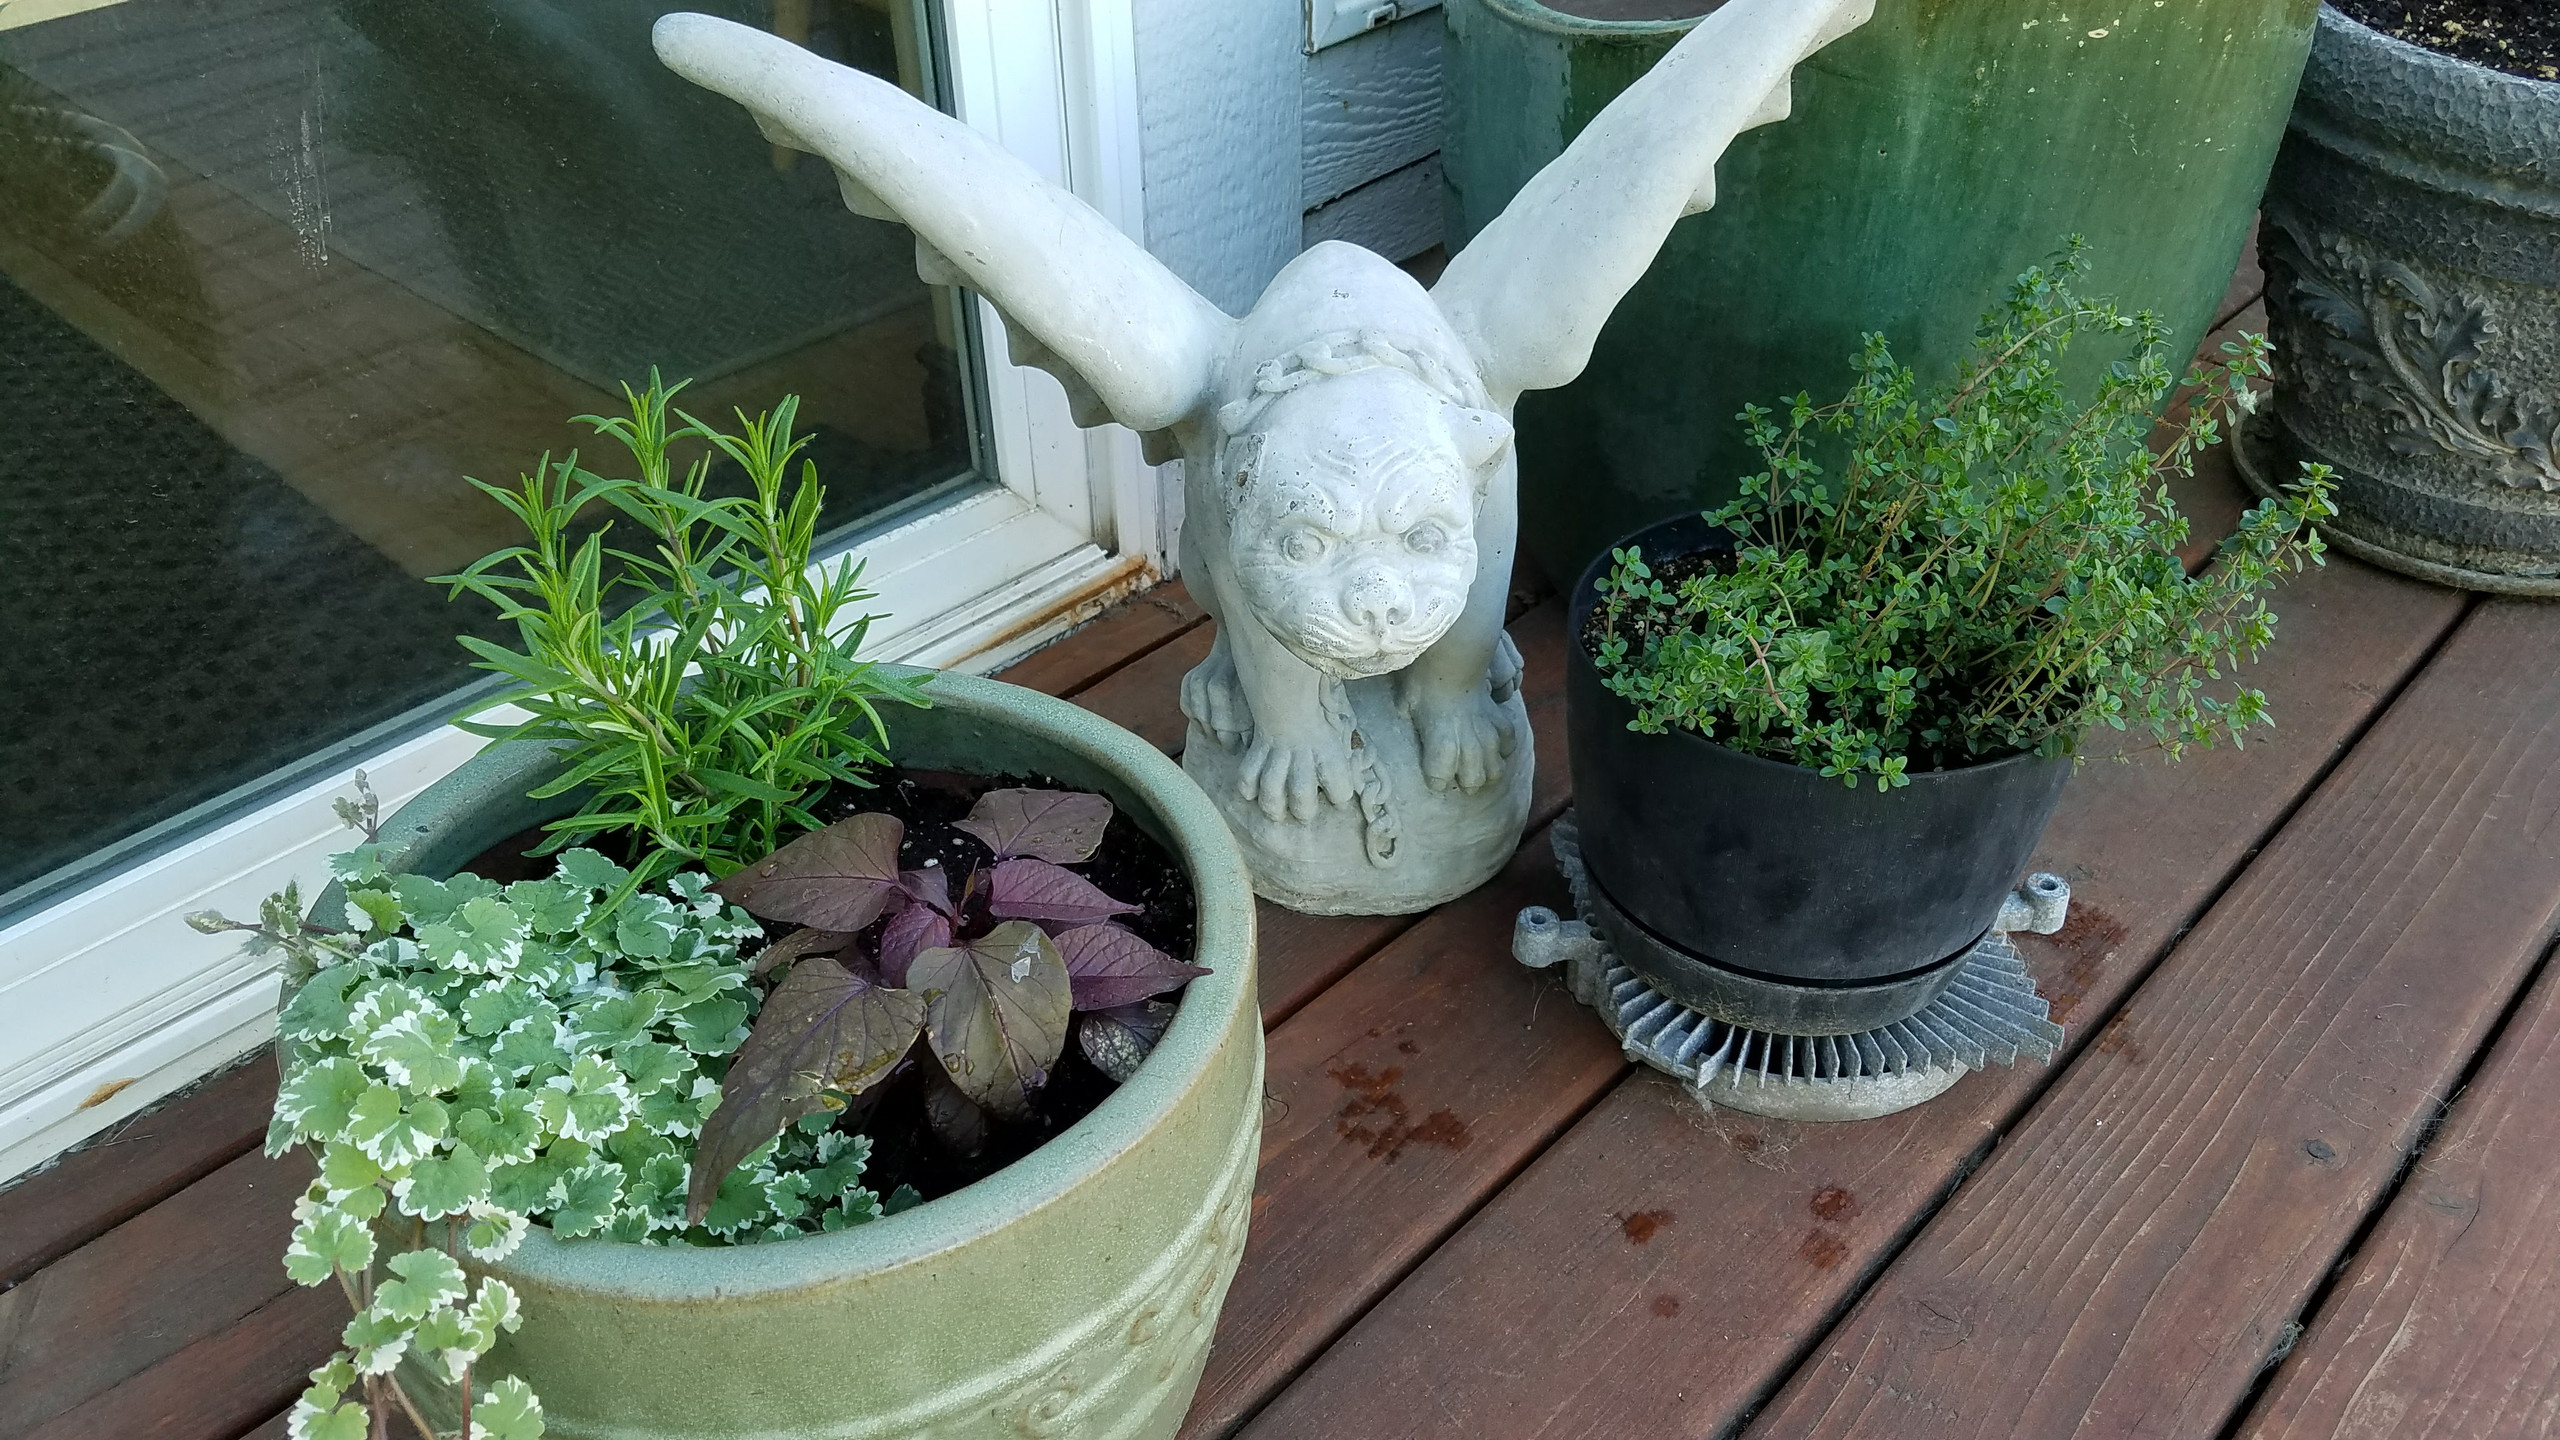 Gargoyle and Containers